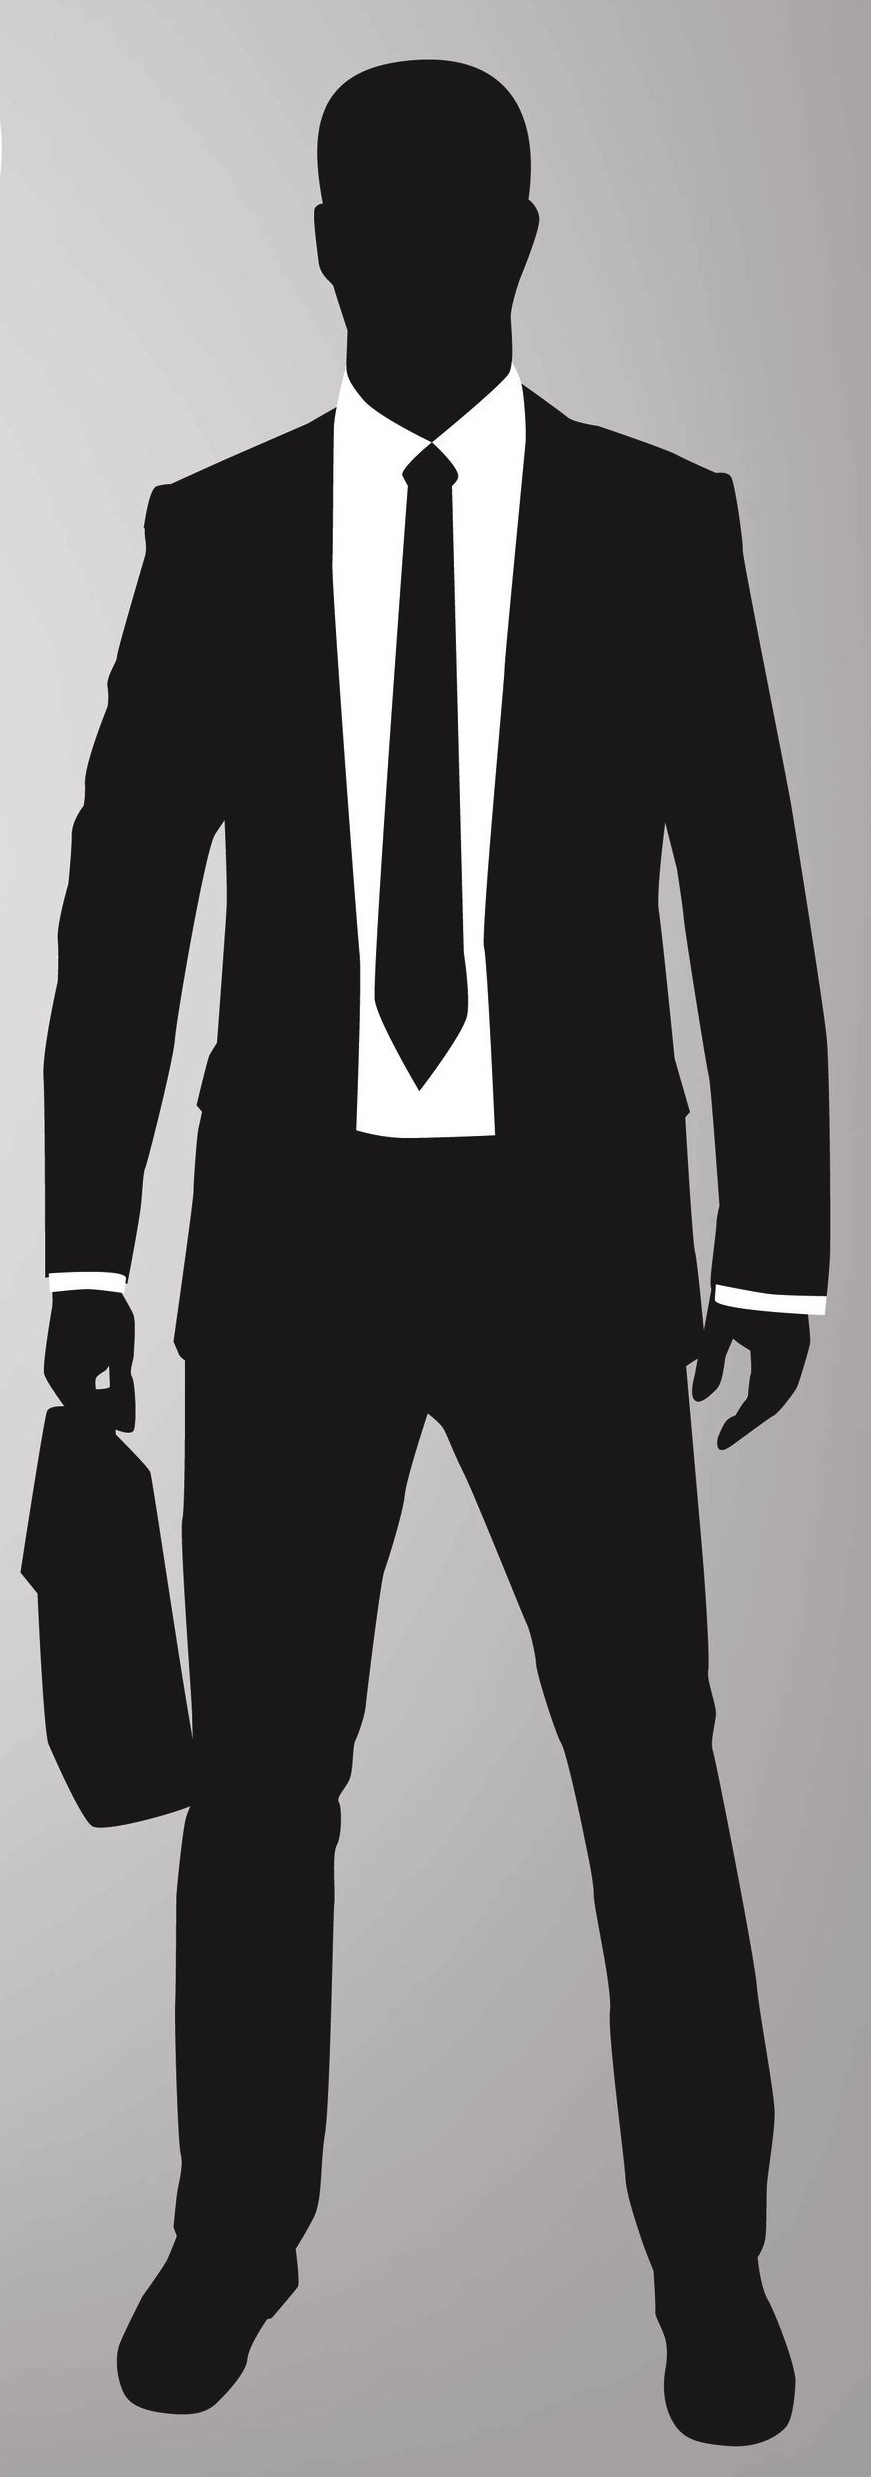 Download Men In Suits Png